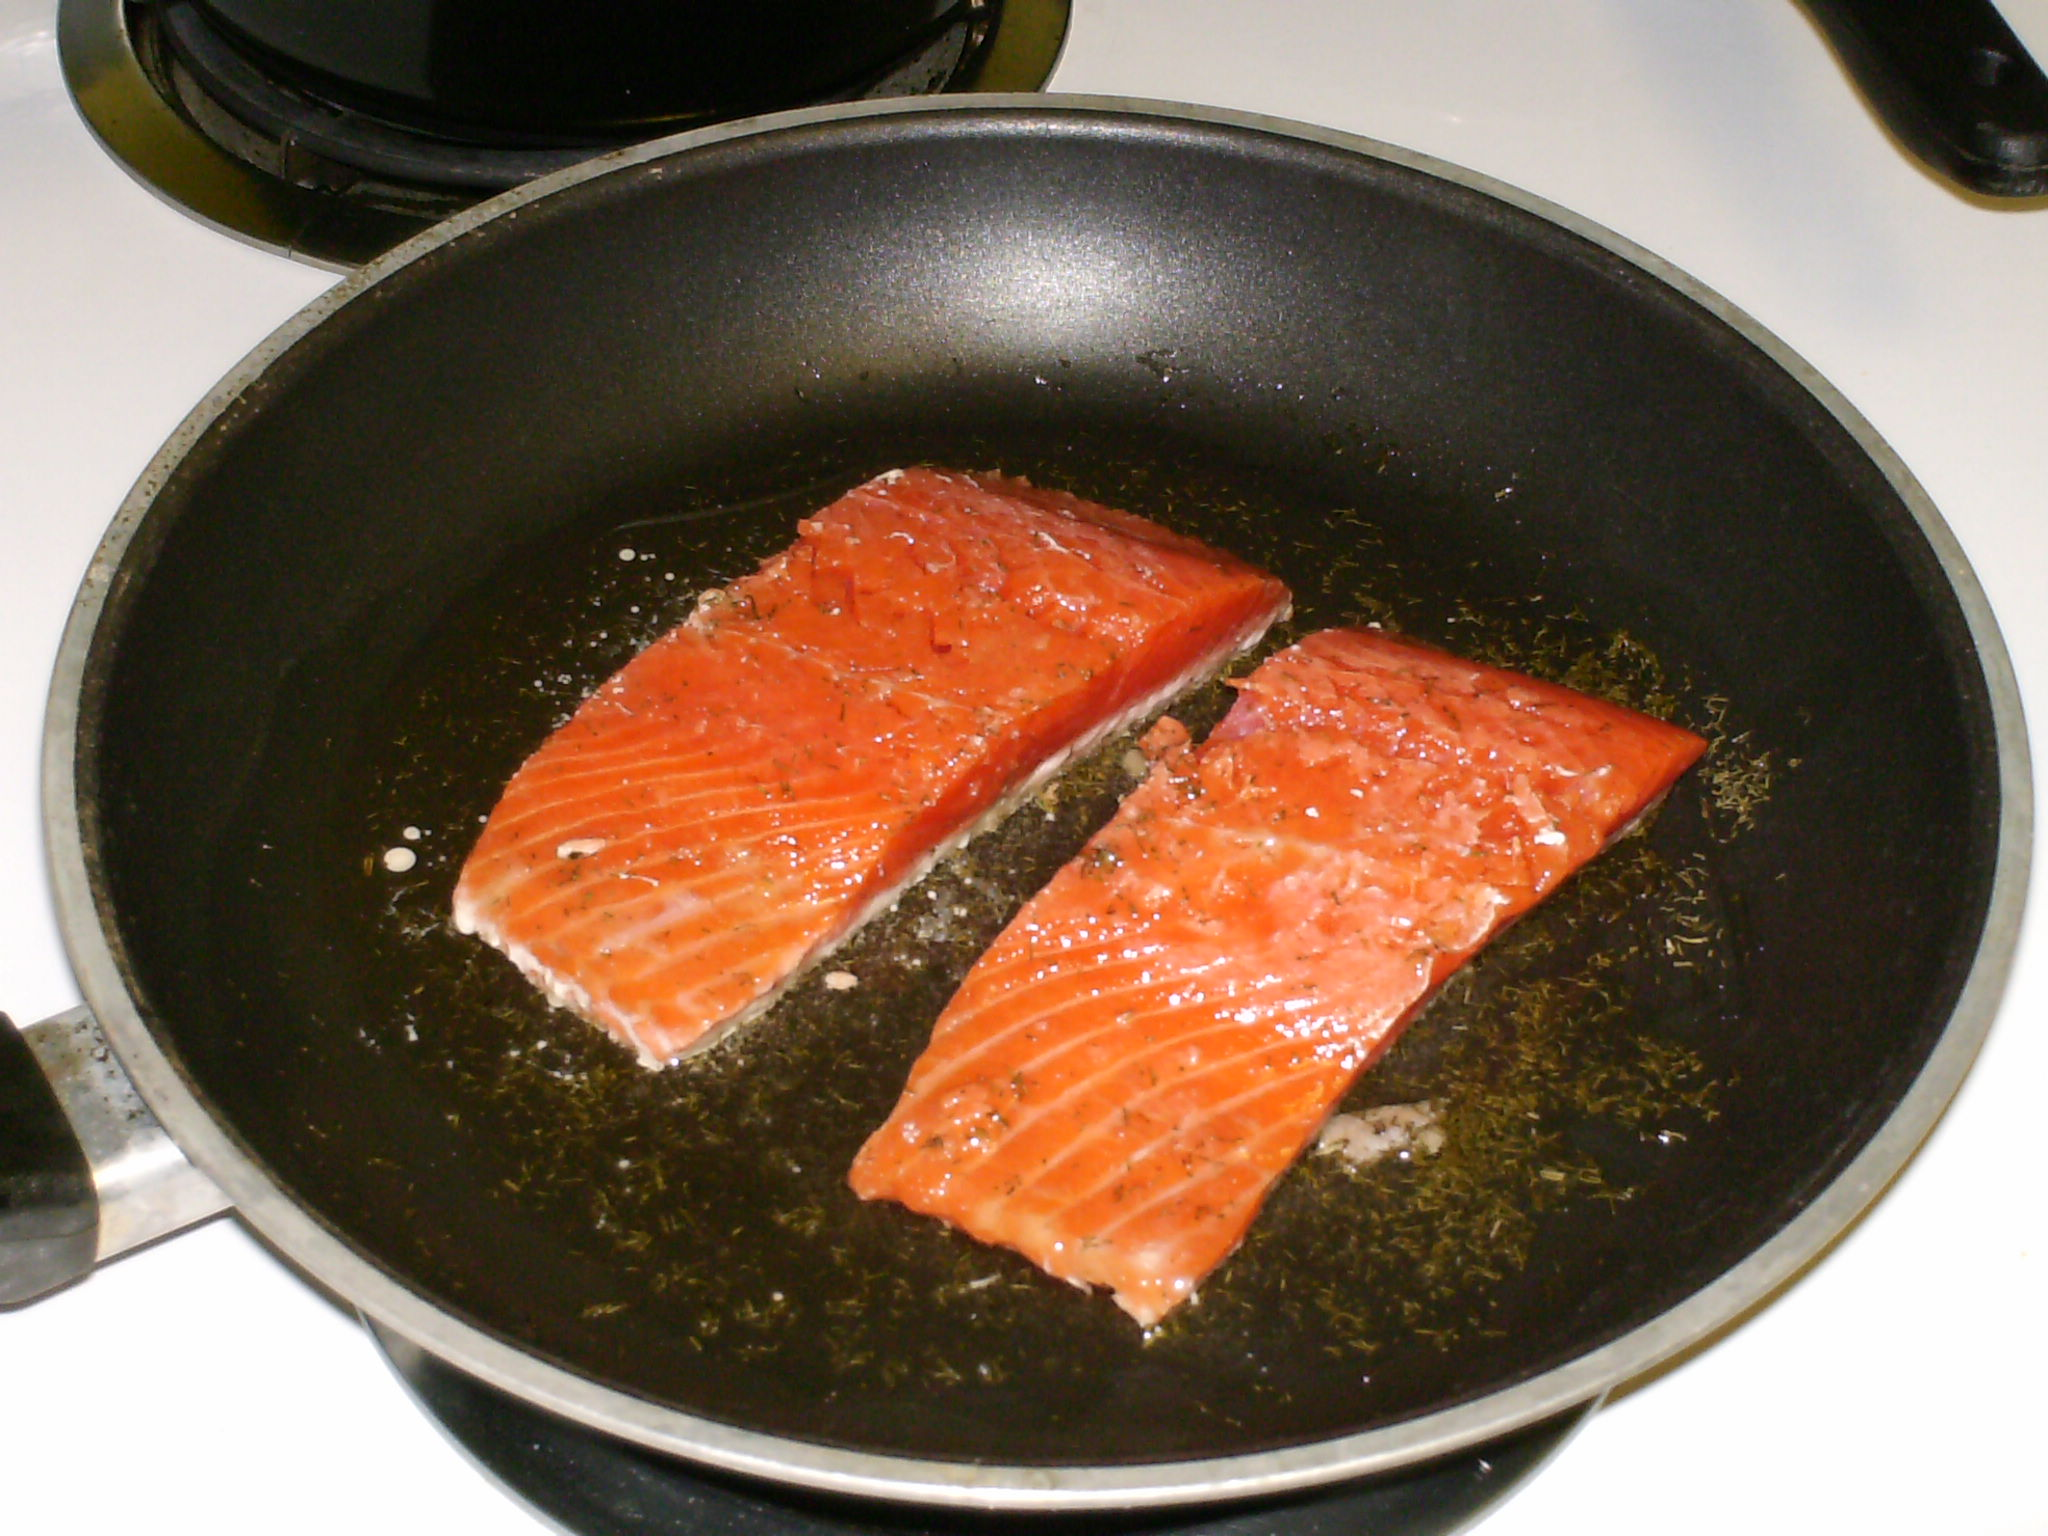 How to Prepare and Cook Salmon